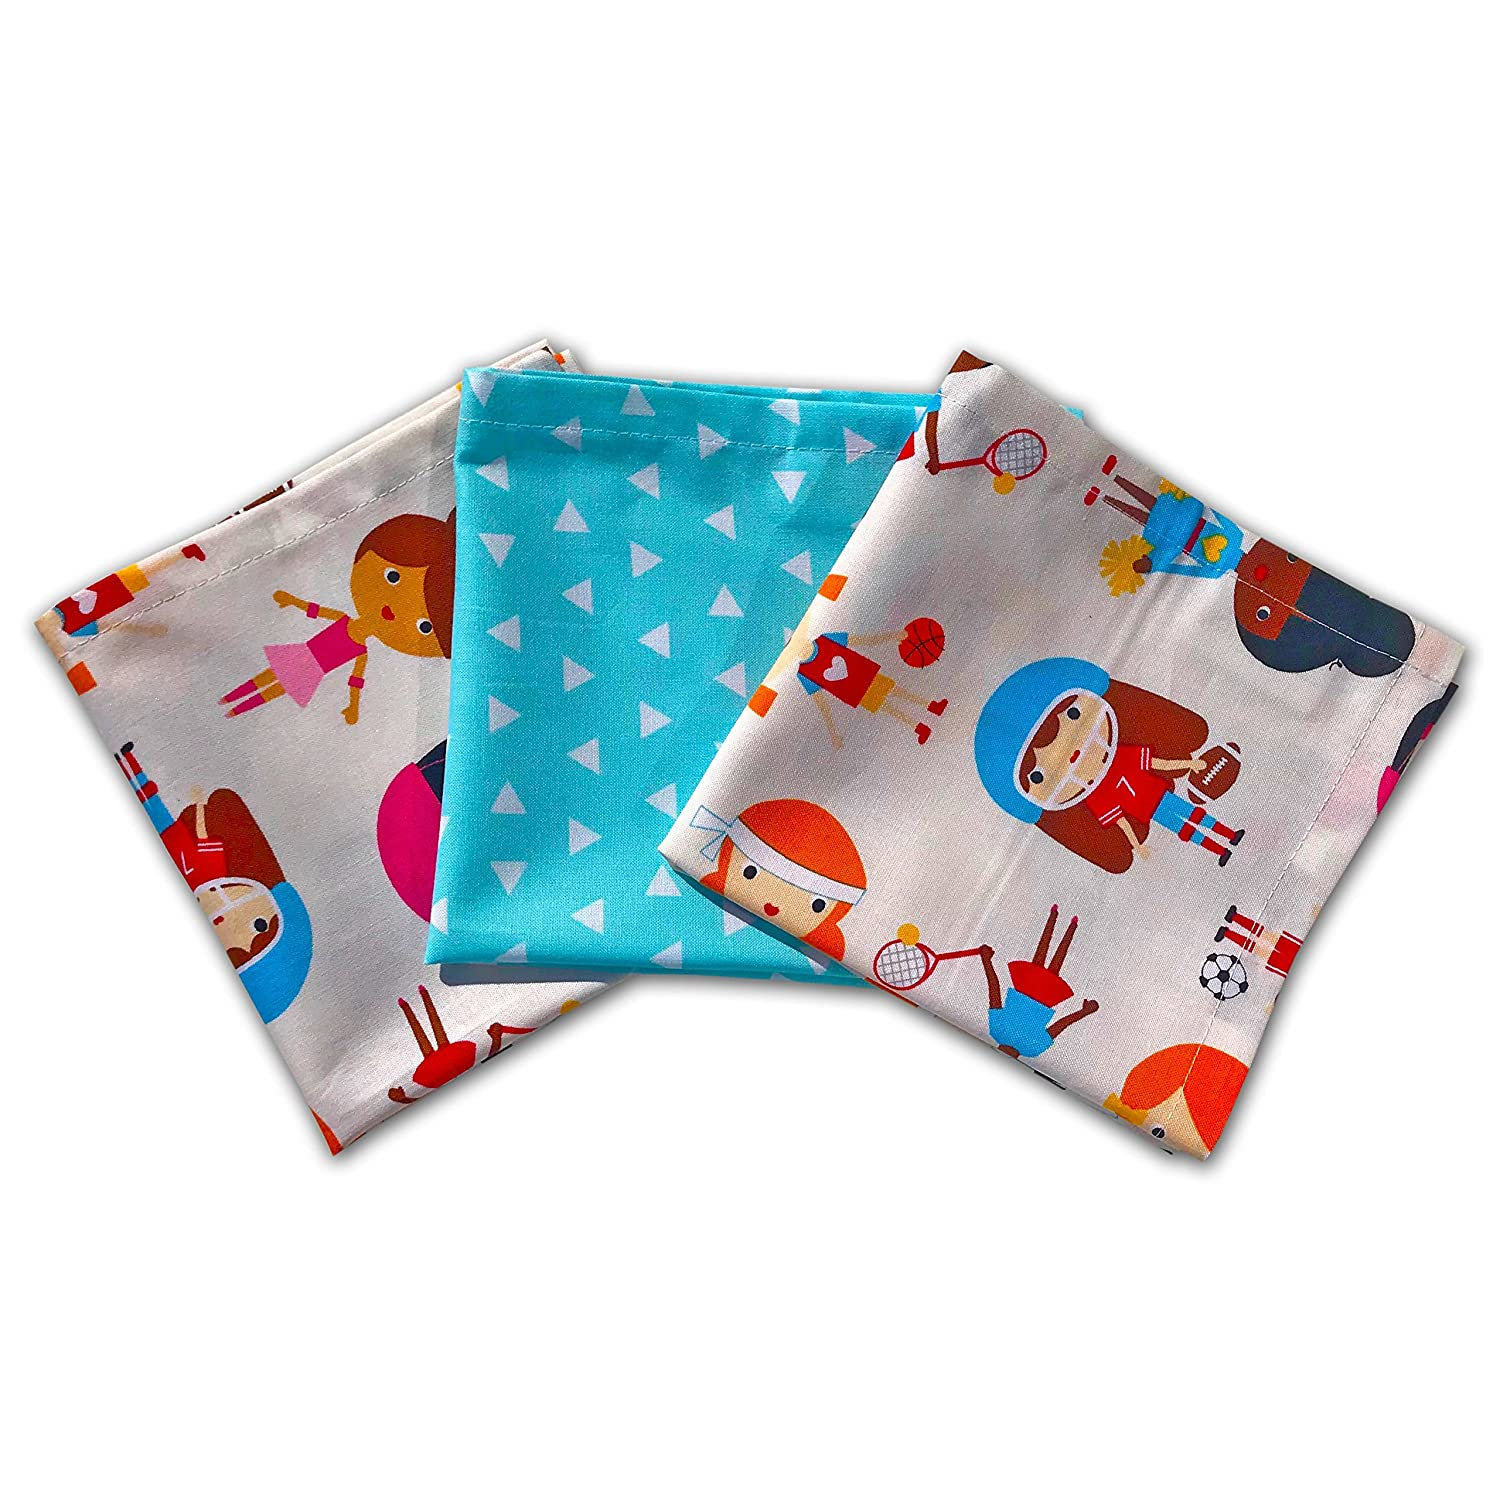 FUNKINS Reusable Cotton Cloth Napkins for Kids, 12x12 Soft Cotton Napkins, Set of 3, SPORTY GIRLS MyFunkins Ltd.